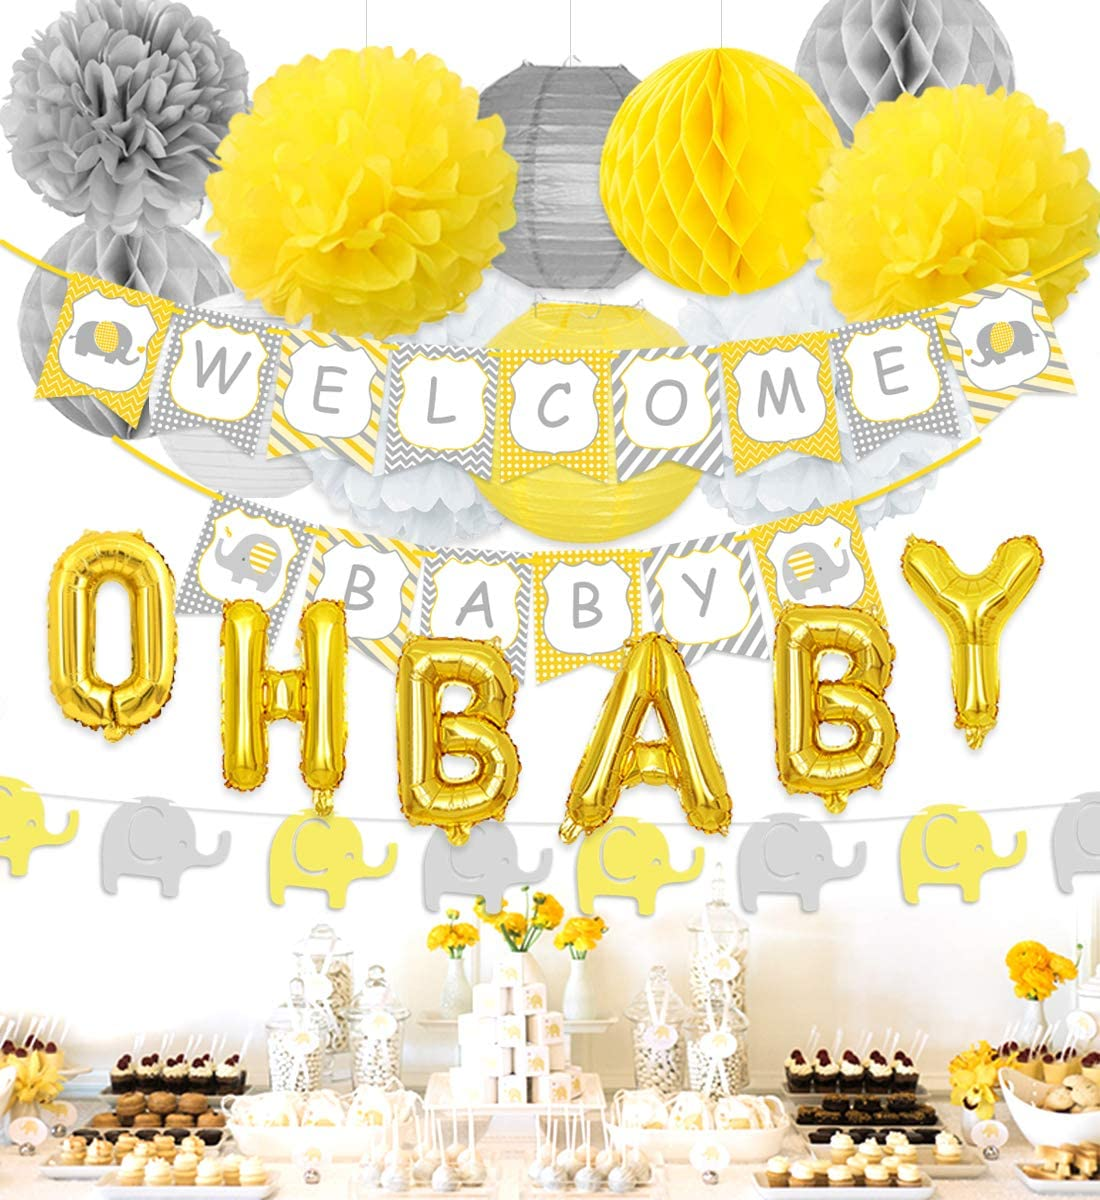 Elephant Baby Shower Decorations Neutral Party Decorations with Yellow and Gray Welcome Baby Banner, Elephant Garland